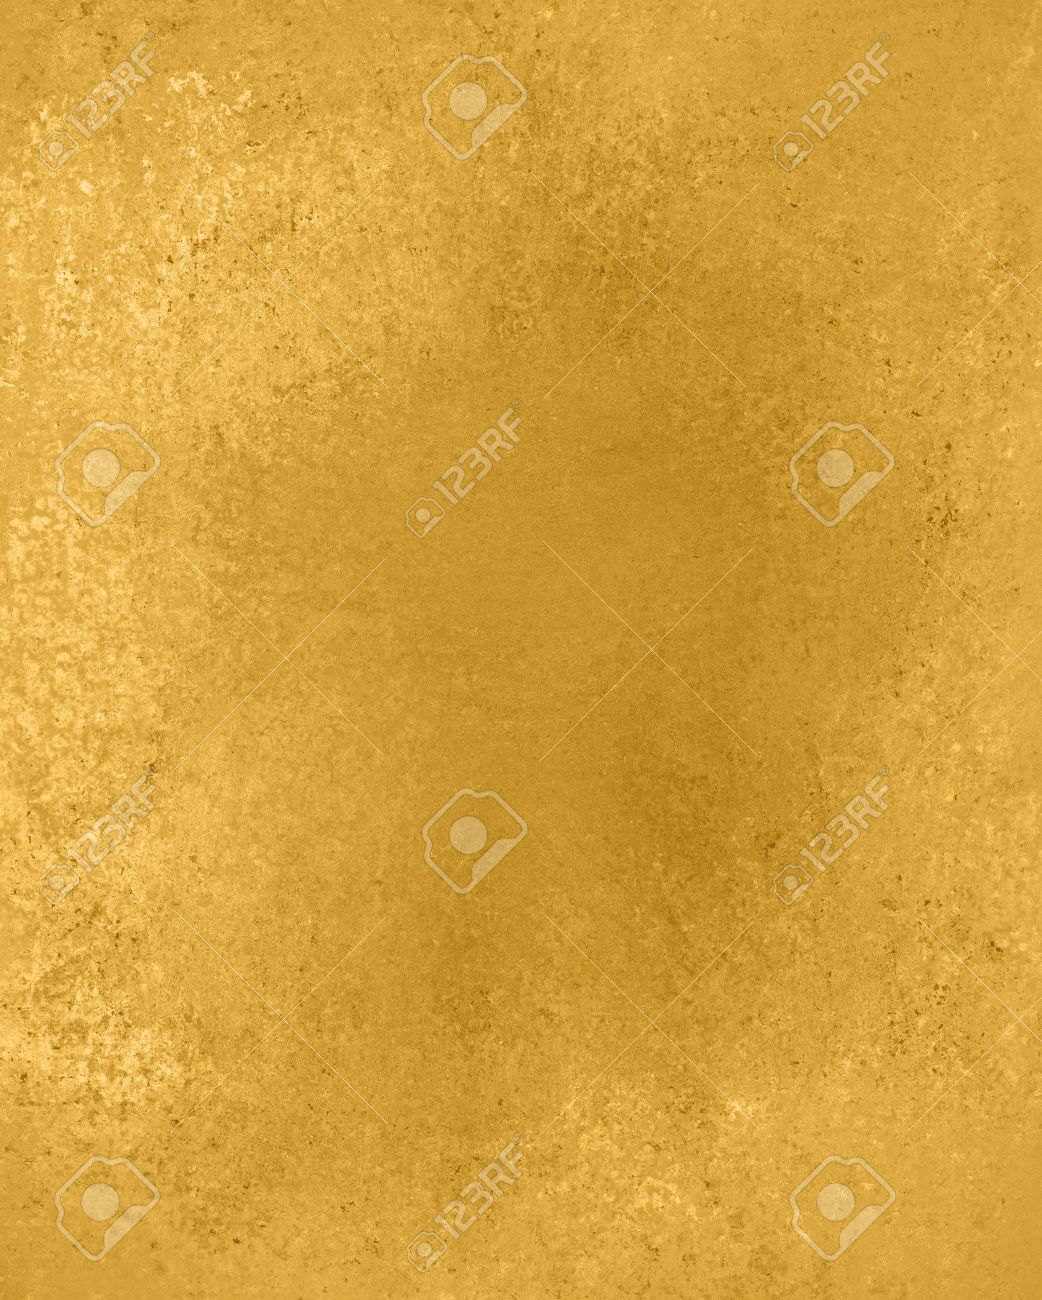 Yellow Gold Background Texture Design, Old Gold Wall Paint Stock ...